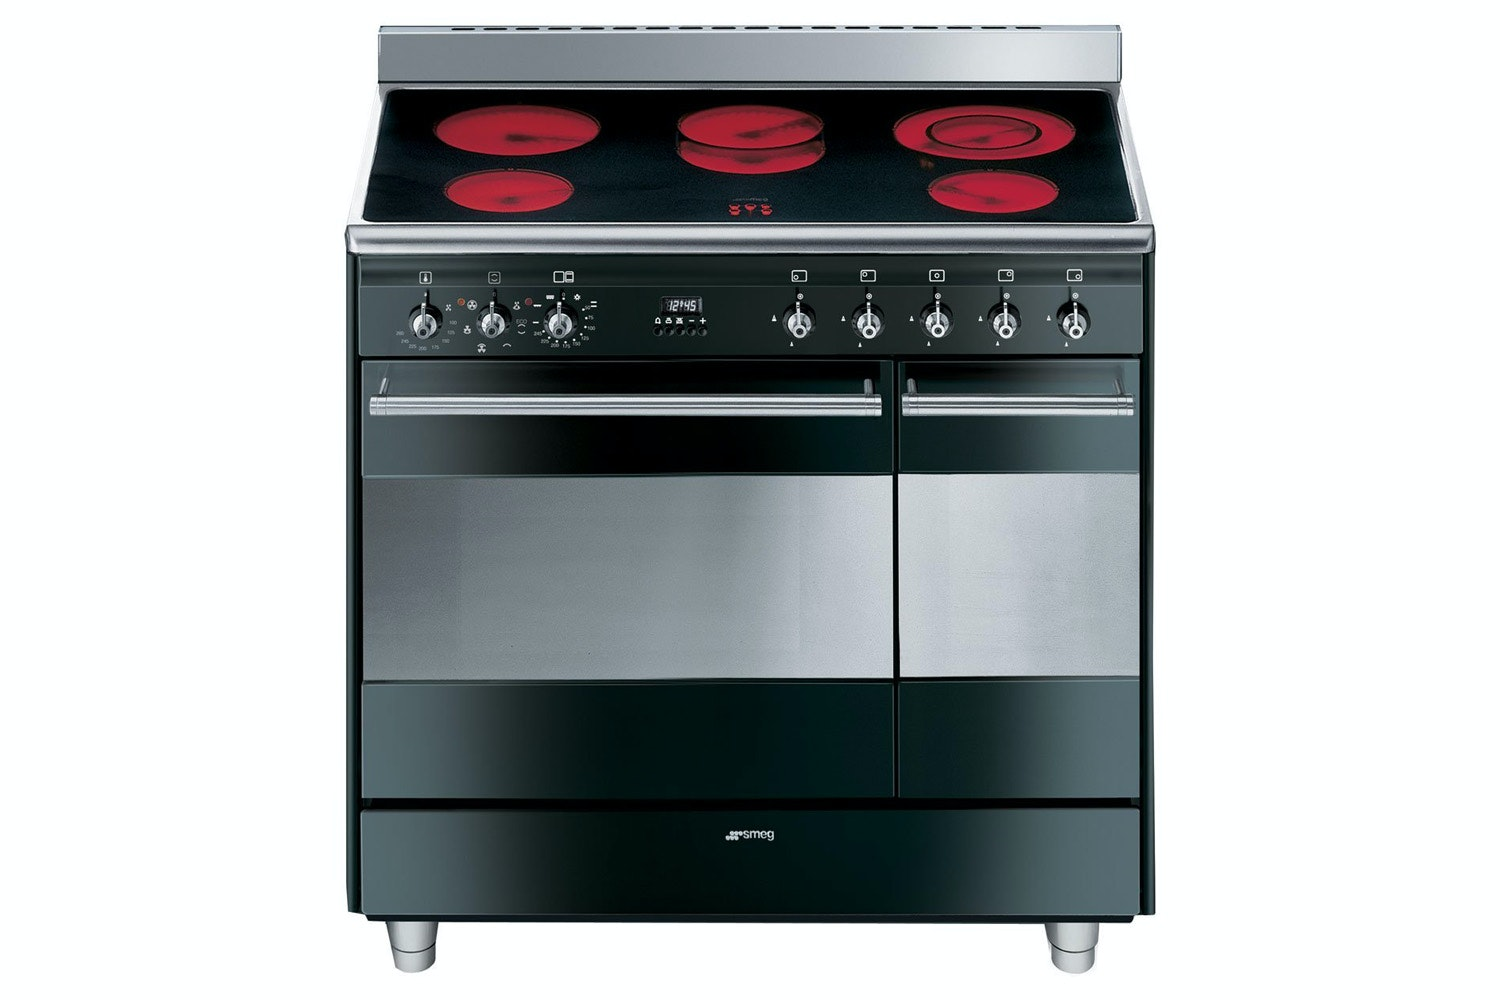 Smeg 90cm Electric Range Cooker | SUK92CBL9 | Black